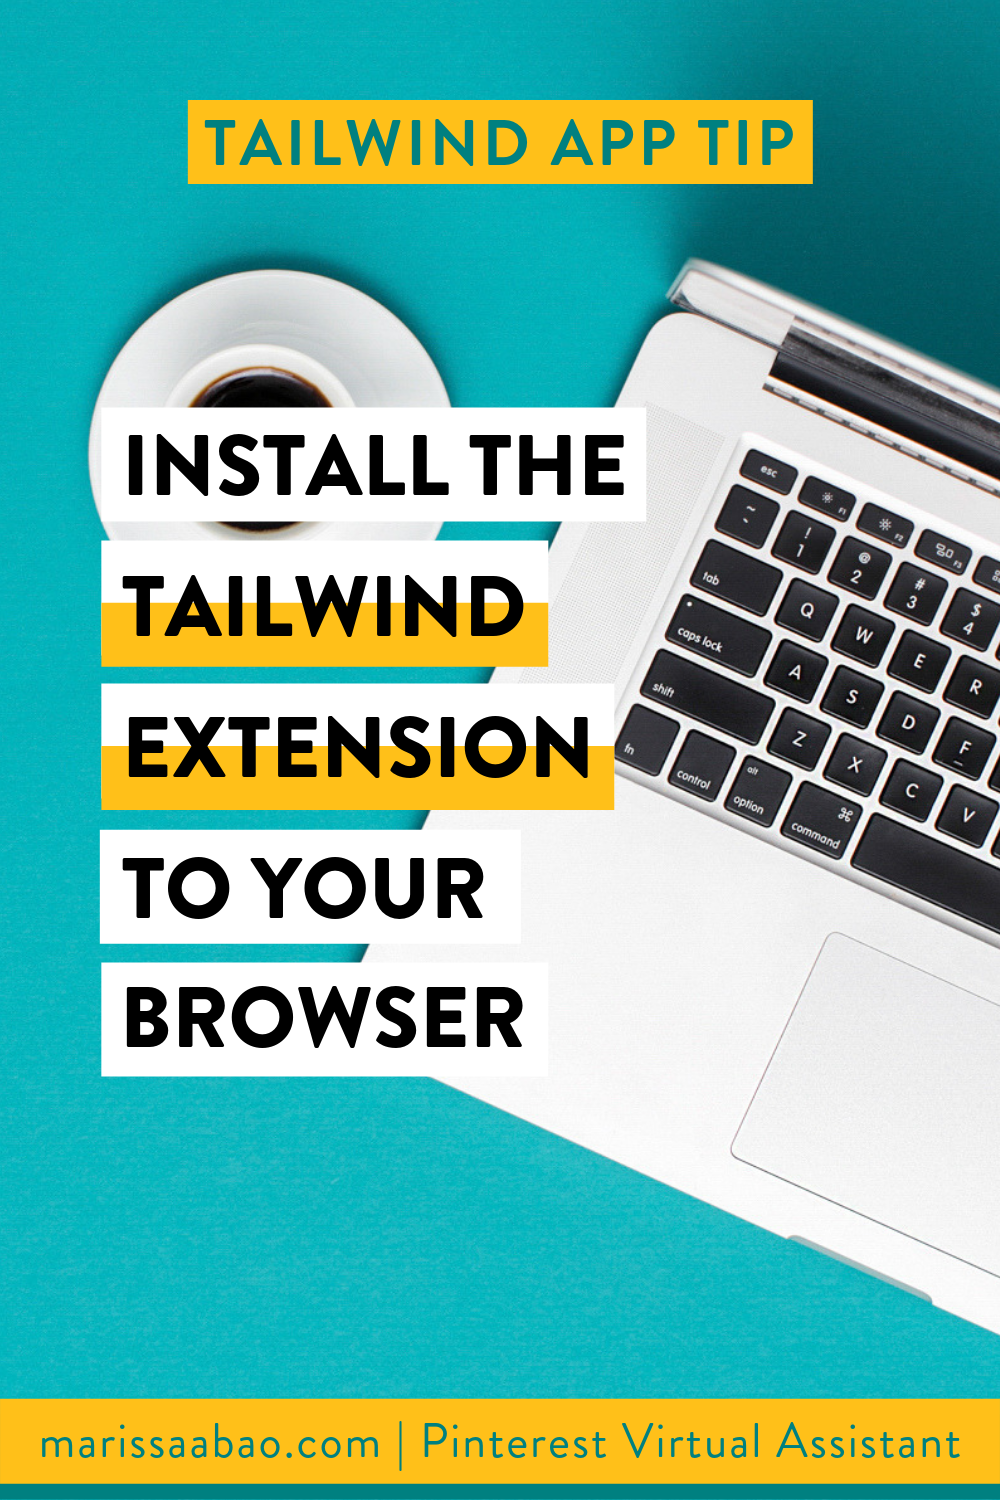 Tailwind App Tip: Install the Tailwind Extension for your browser - #tailwindapp #virtualassistant #pinterestvirtualasistant #pinterestva #pinterestmarketing